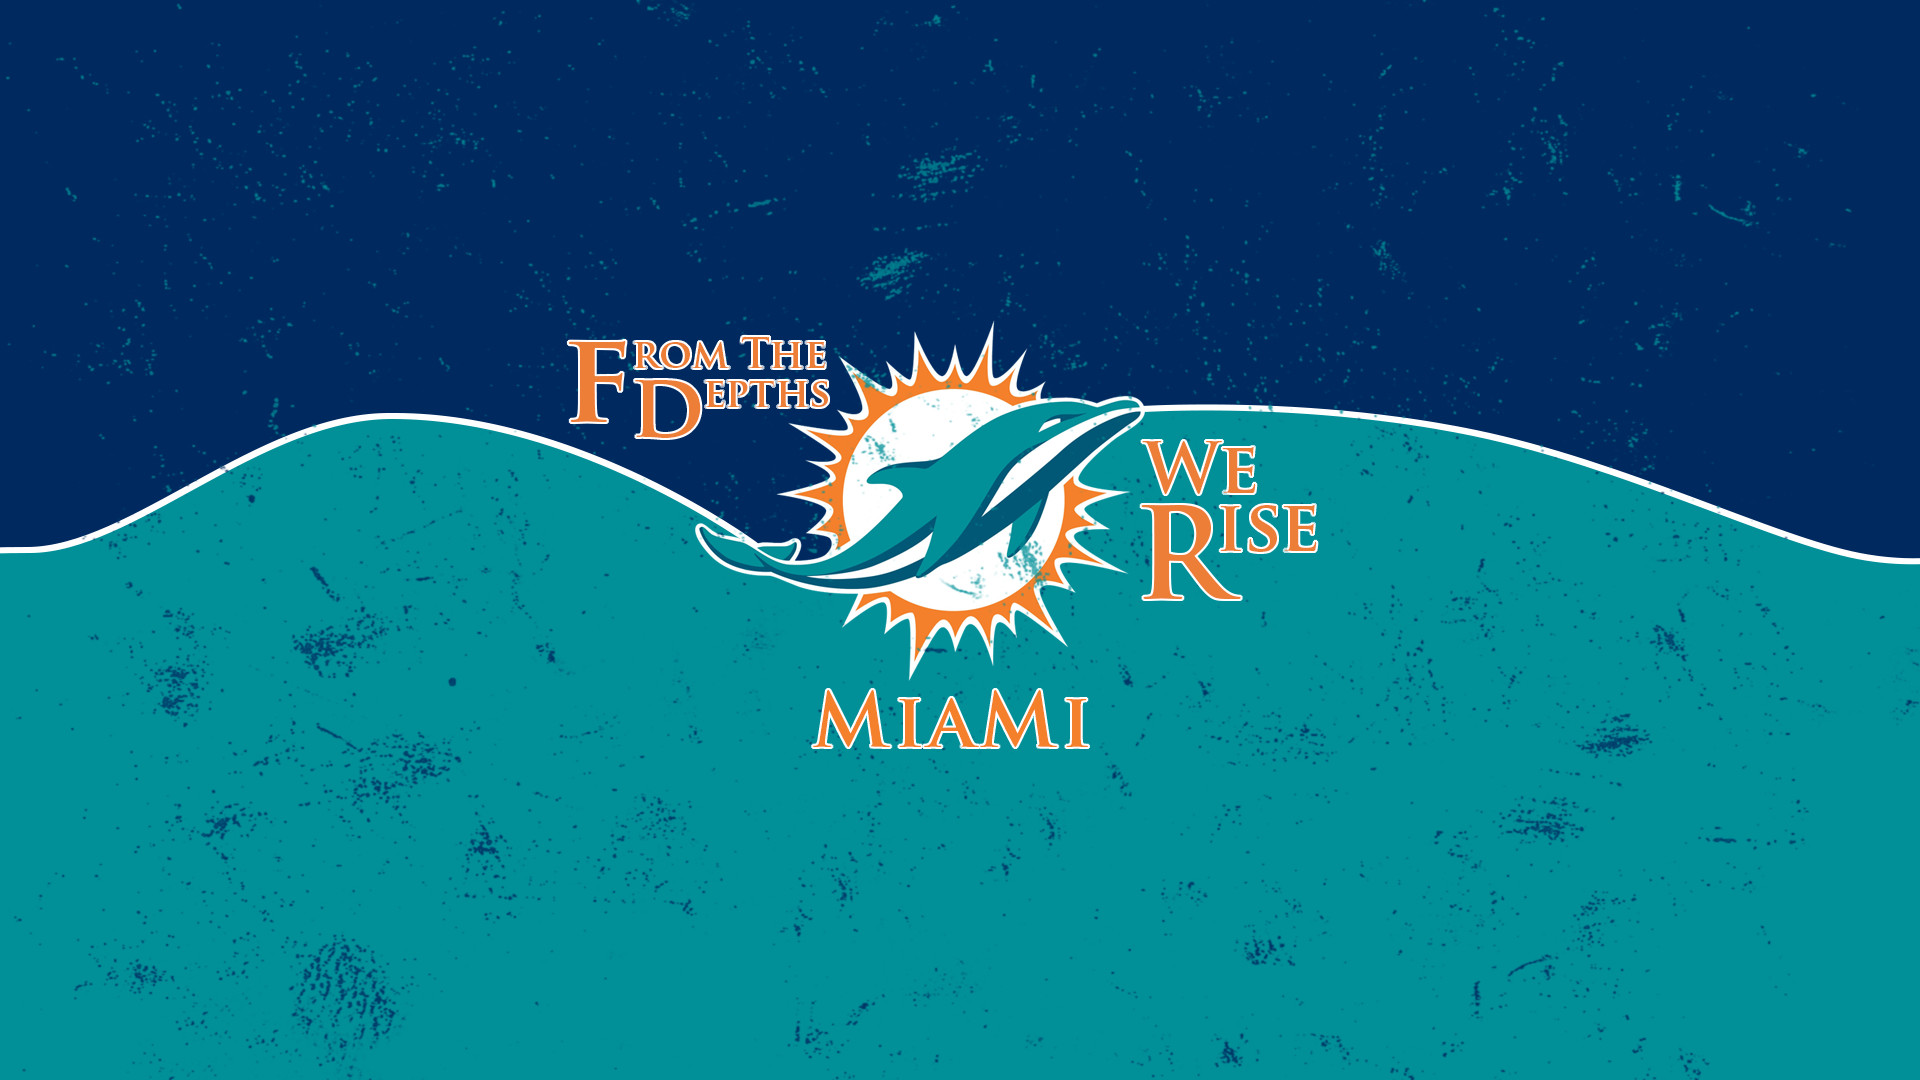 Miami Dolphins New Logo Phone Wallpaper Thrones 1080p wallpapers 1920x1080